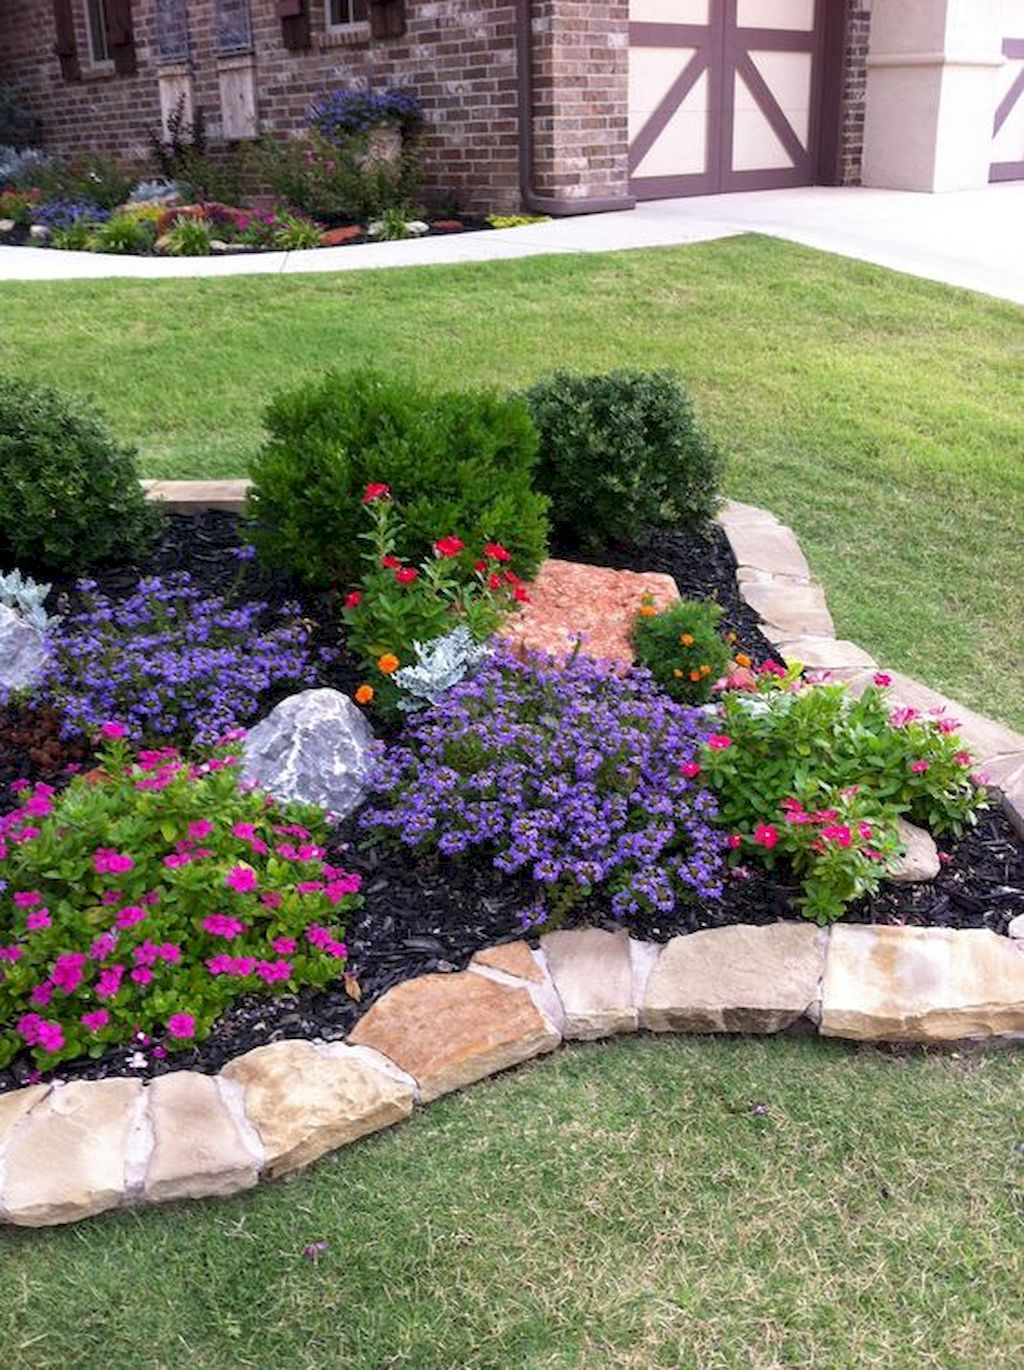 50 Stunning Spring Garden Ideas for Front Yard and Backyard Landscaping #frontyarddesign